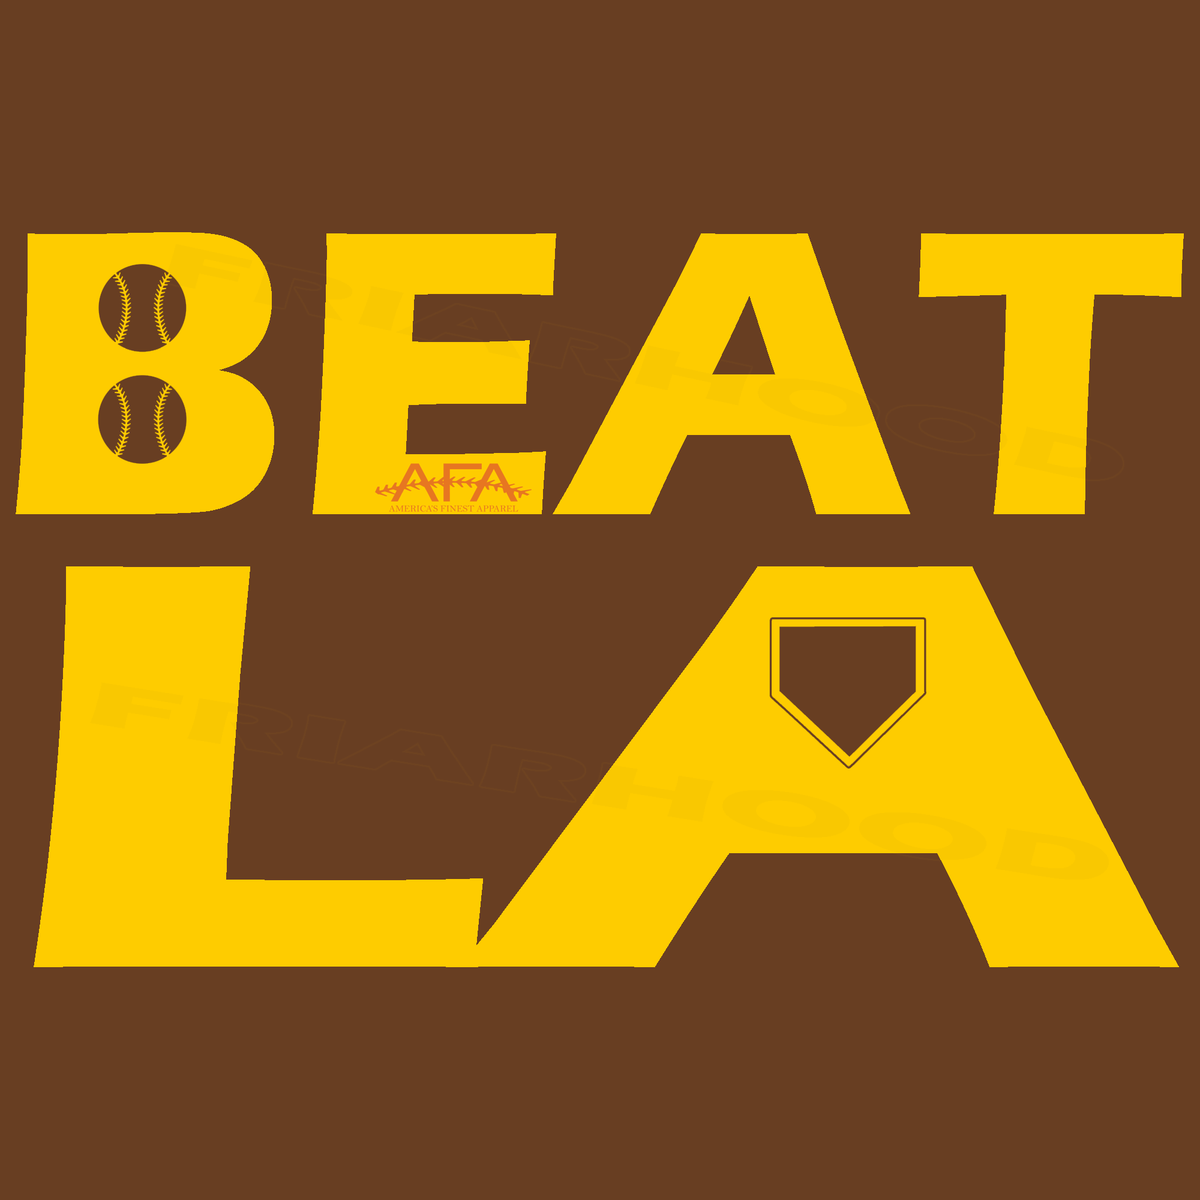 #BEATLA http://t.co/HjW3zBFGqX